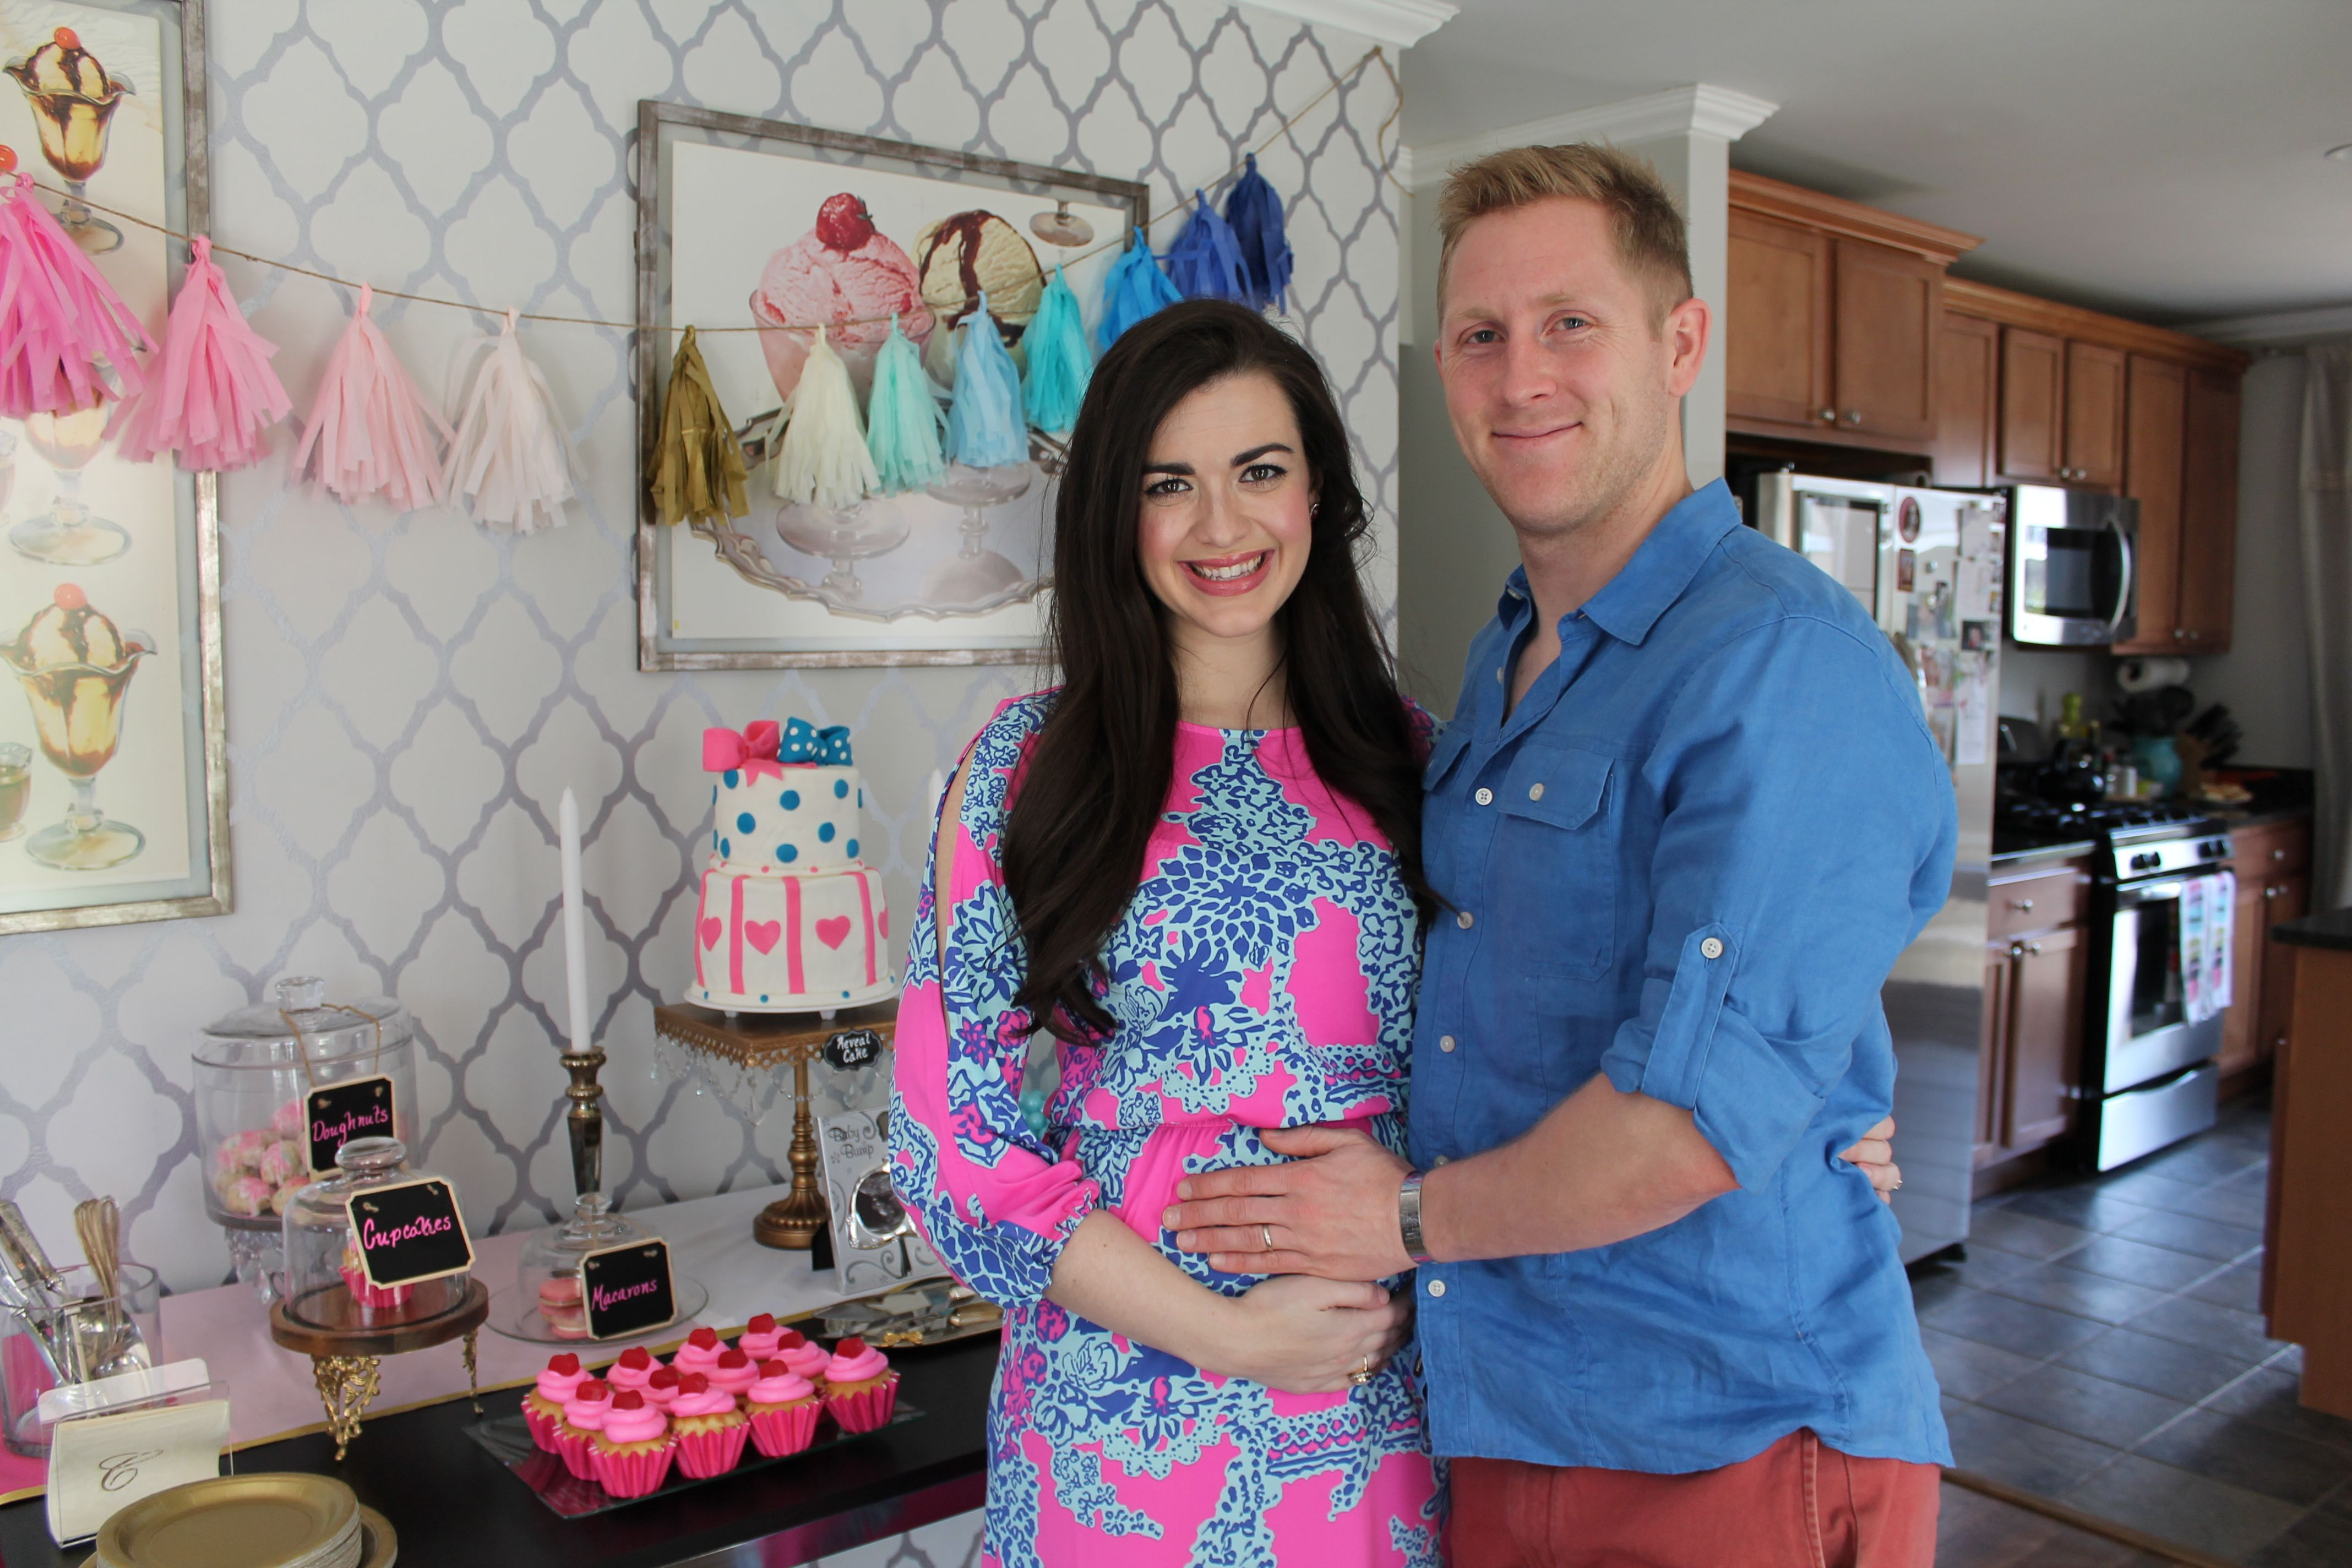 Gender Reveal Party Pink And Blue Dress By Lilly Pulitzer Gender Reveal Shower Gender Reveal Party Pink And Blue Dress